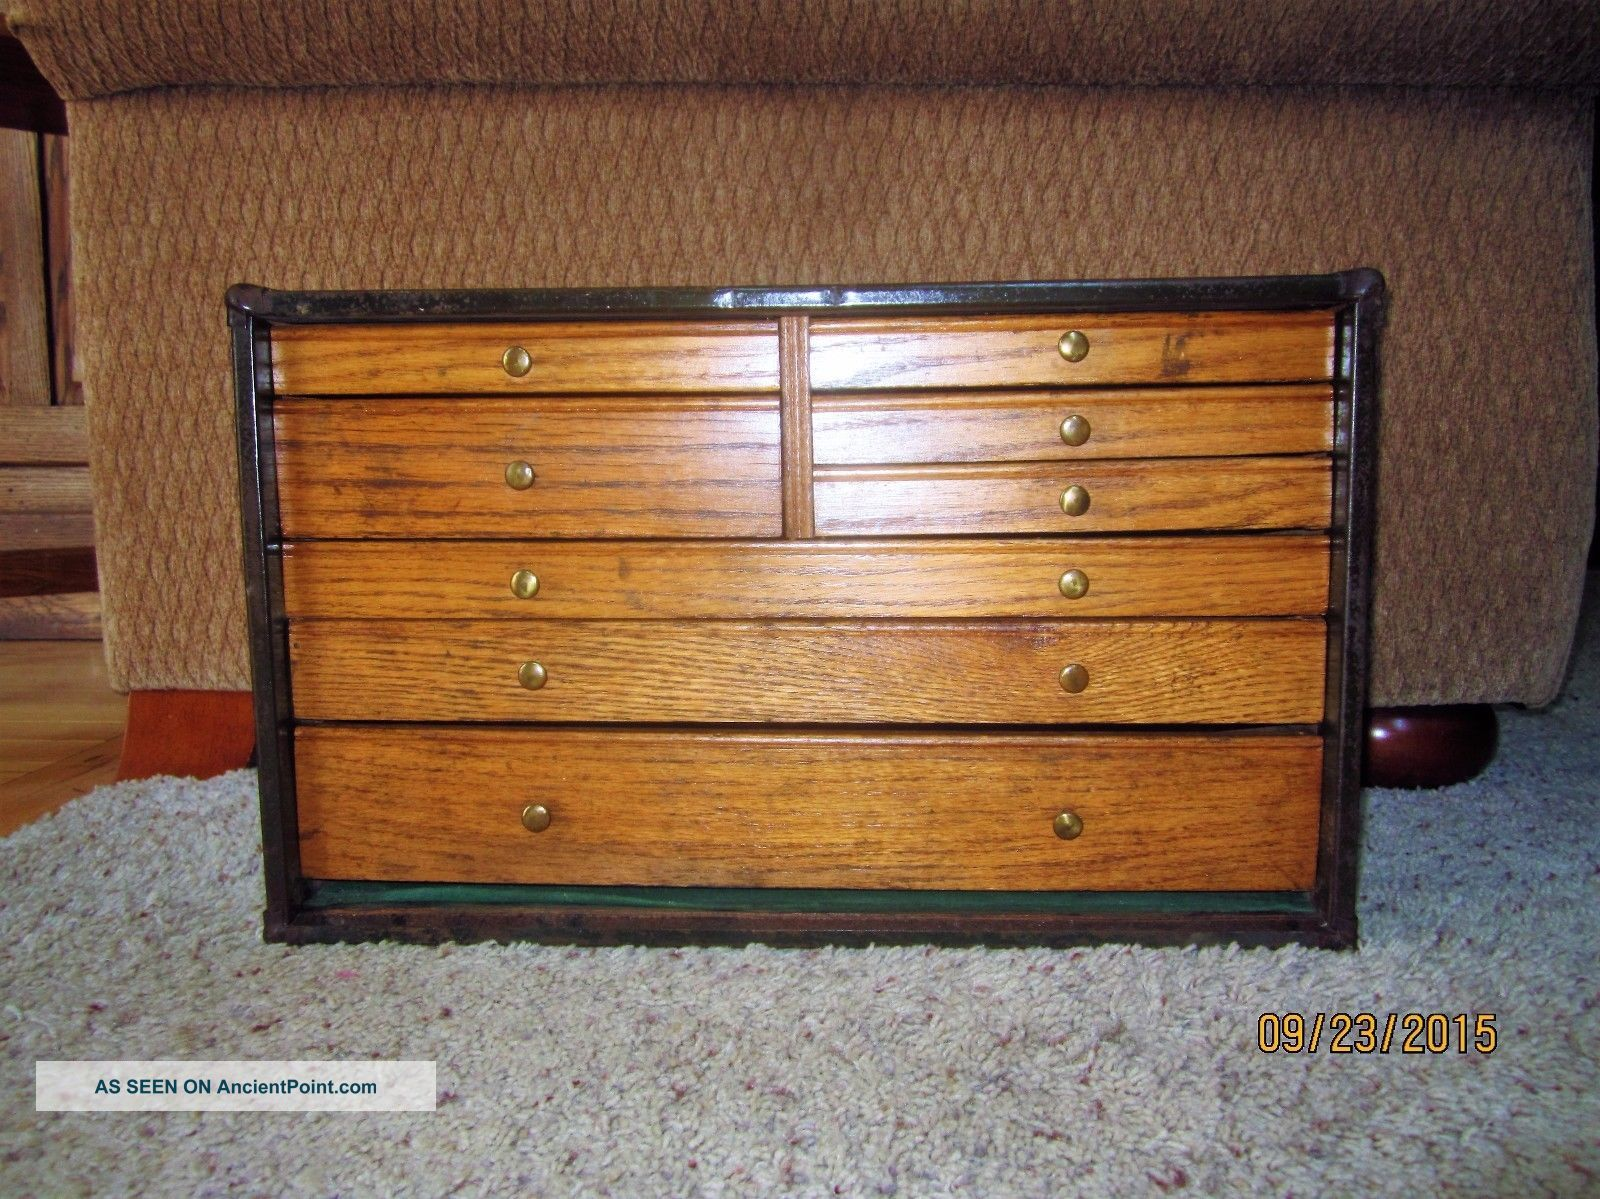 Antique Oak Brass Industrial Tool Chest Jewelry Box Primitive Wood File Cabinet 1900-1950 photo